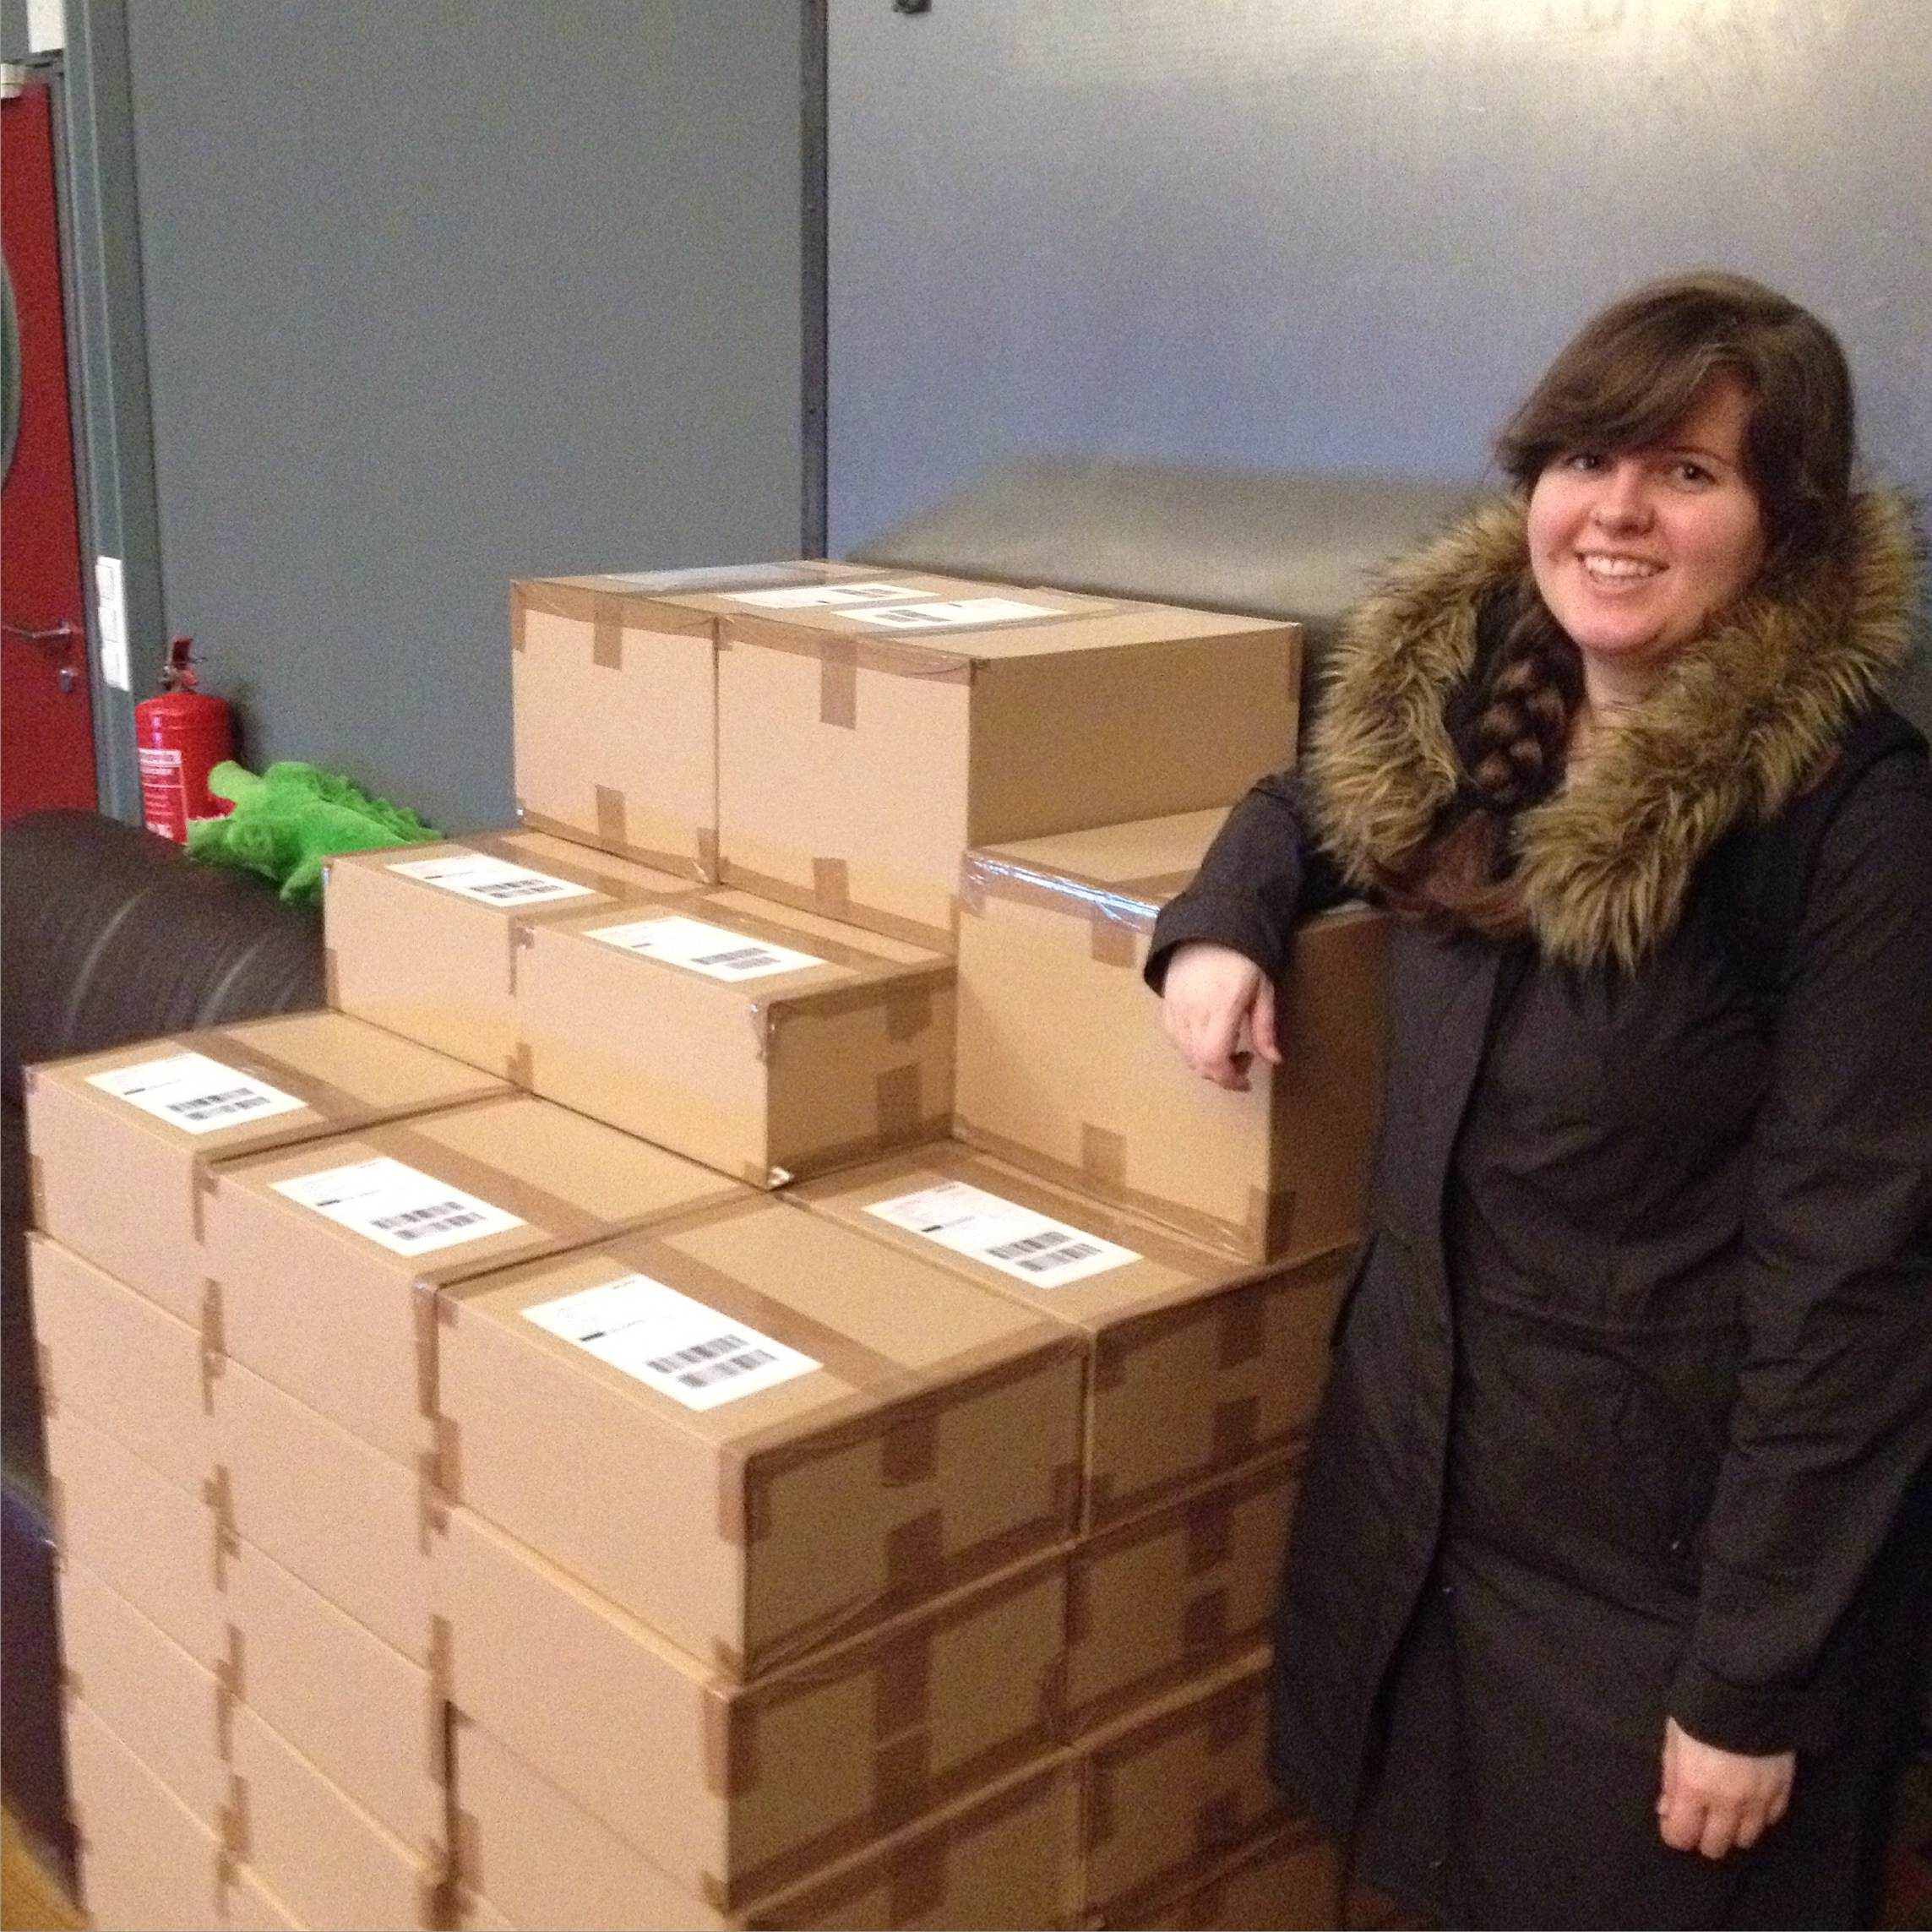 Kits awaiting pick-up for delivery! (Anne posing for height reference)